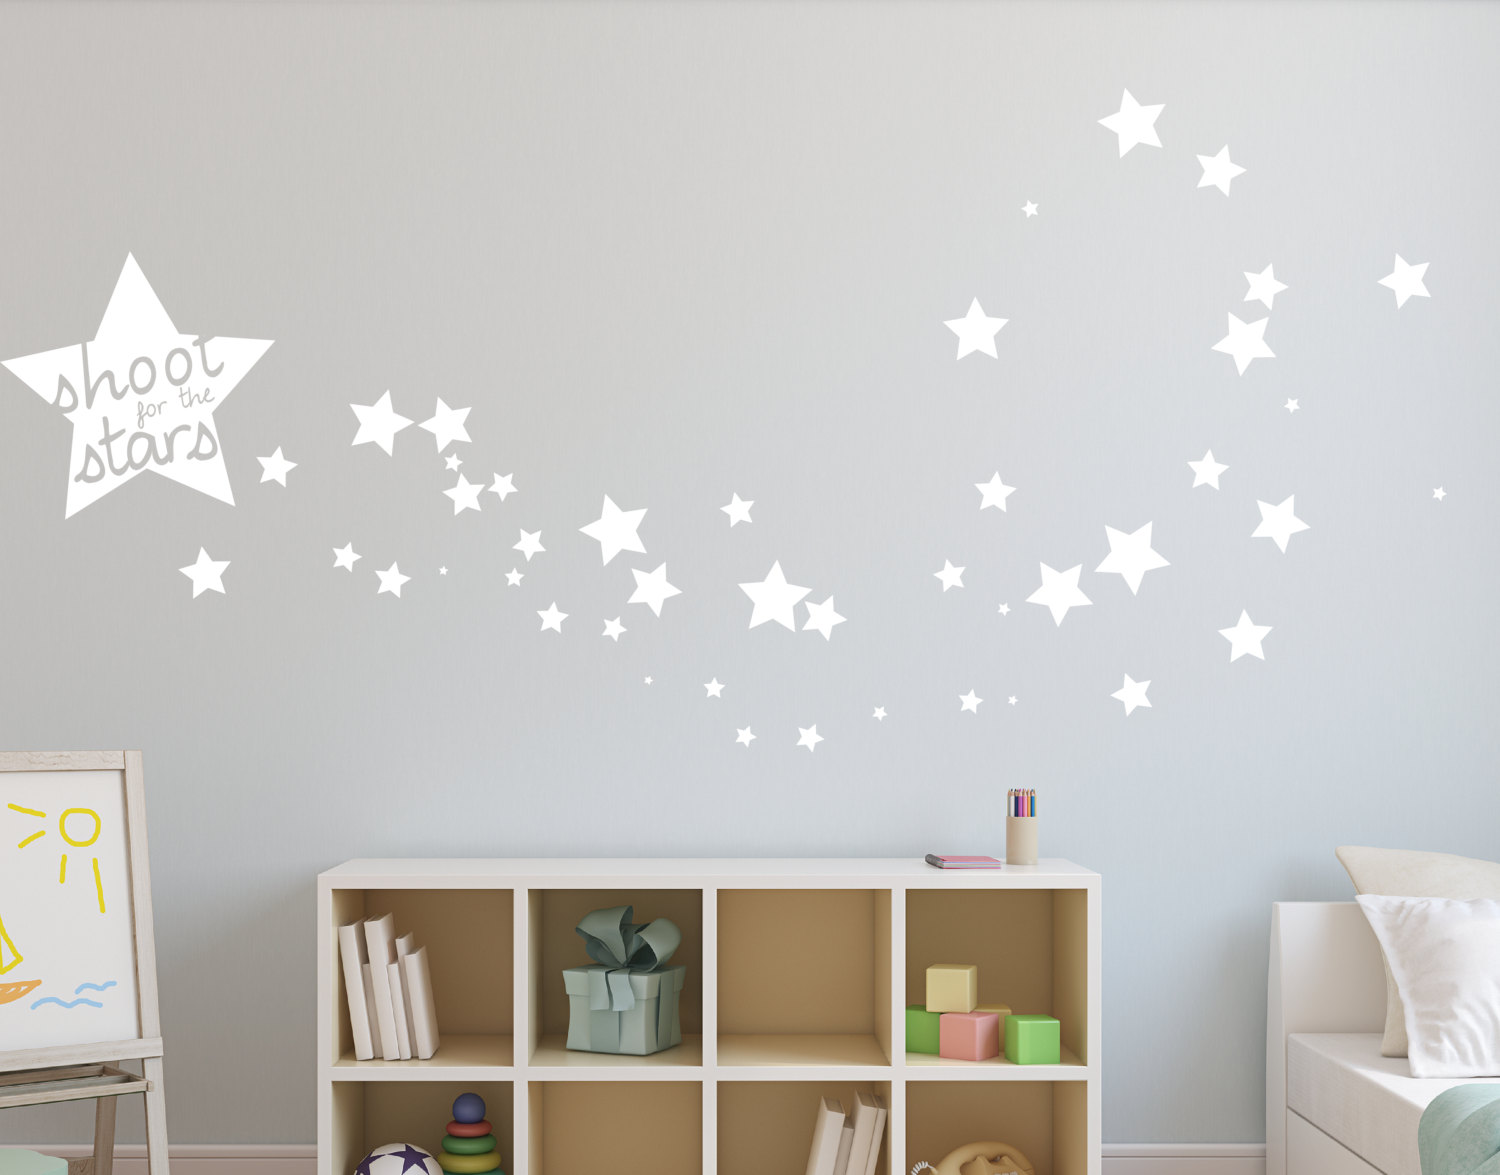 Merveilleux Shoot For The Stars Wall Sticker